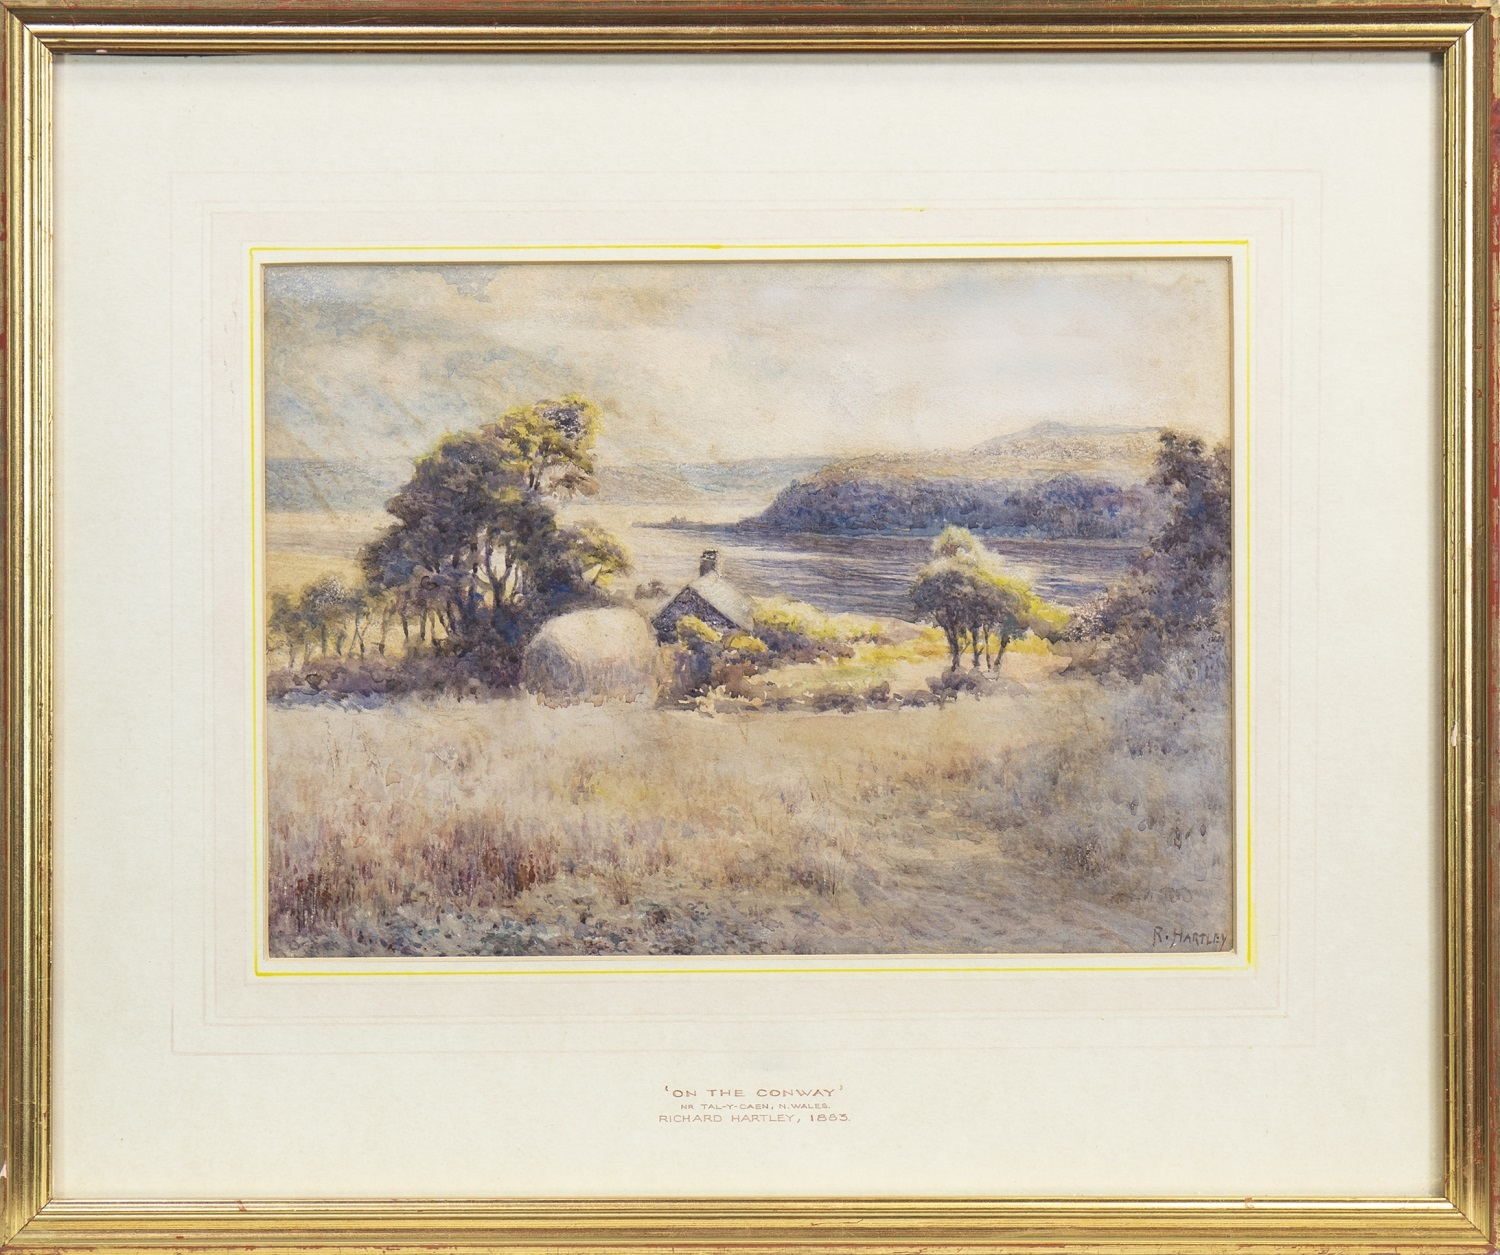 Lot 687 - ON THE CONWAY, NEAR TAL-Y-CAEN, N WALES, A WATERCOLOUR BY RICHARD HARTLEY